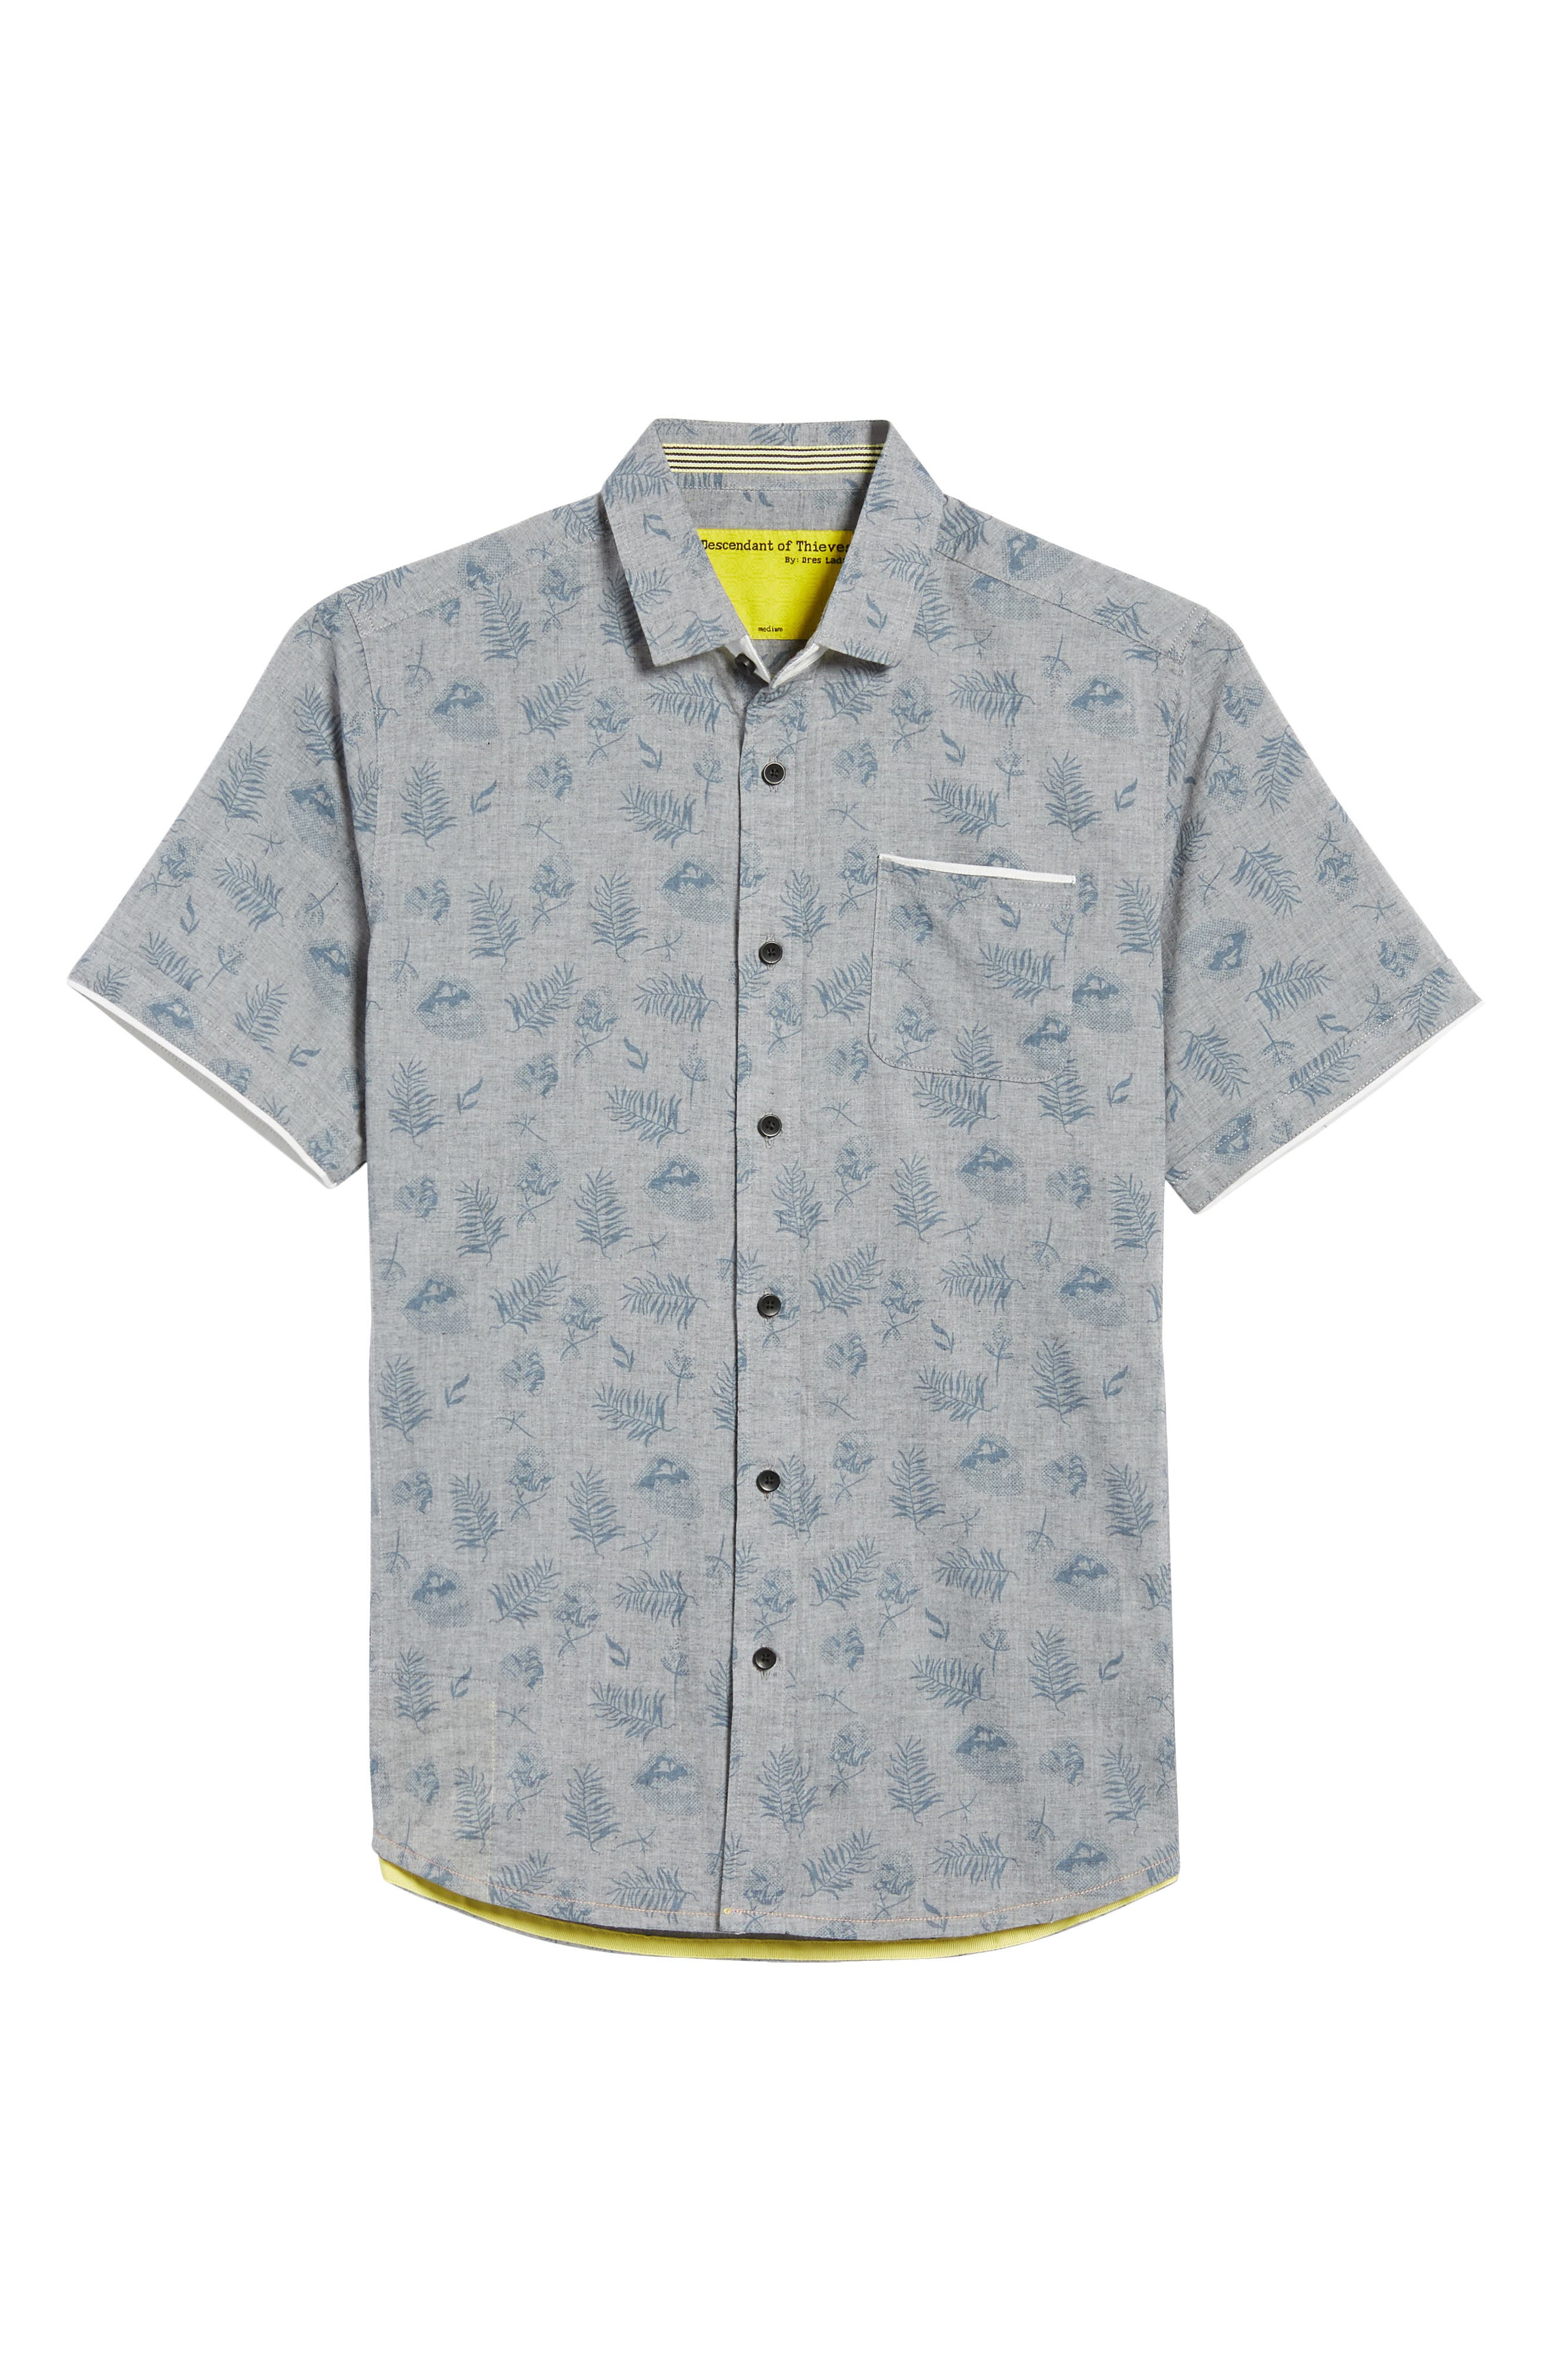 Rock Steady Woven Shirt,                             Alternate thumbnail 6, color,                             Grey